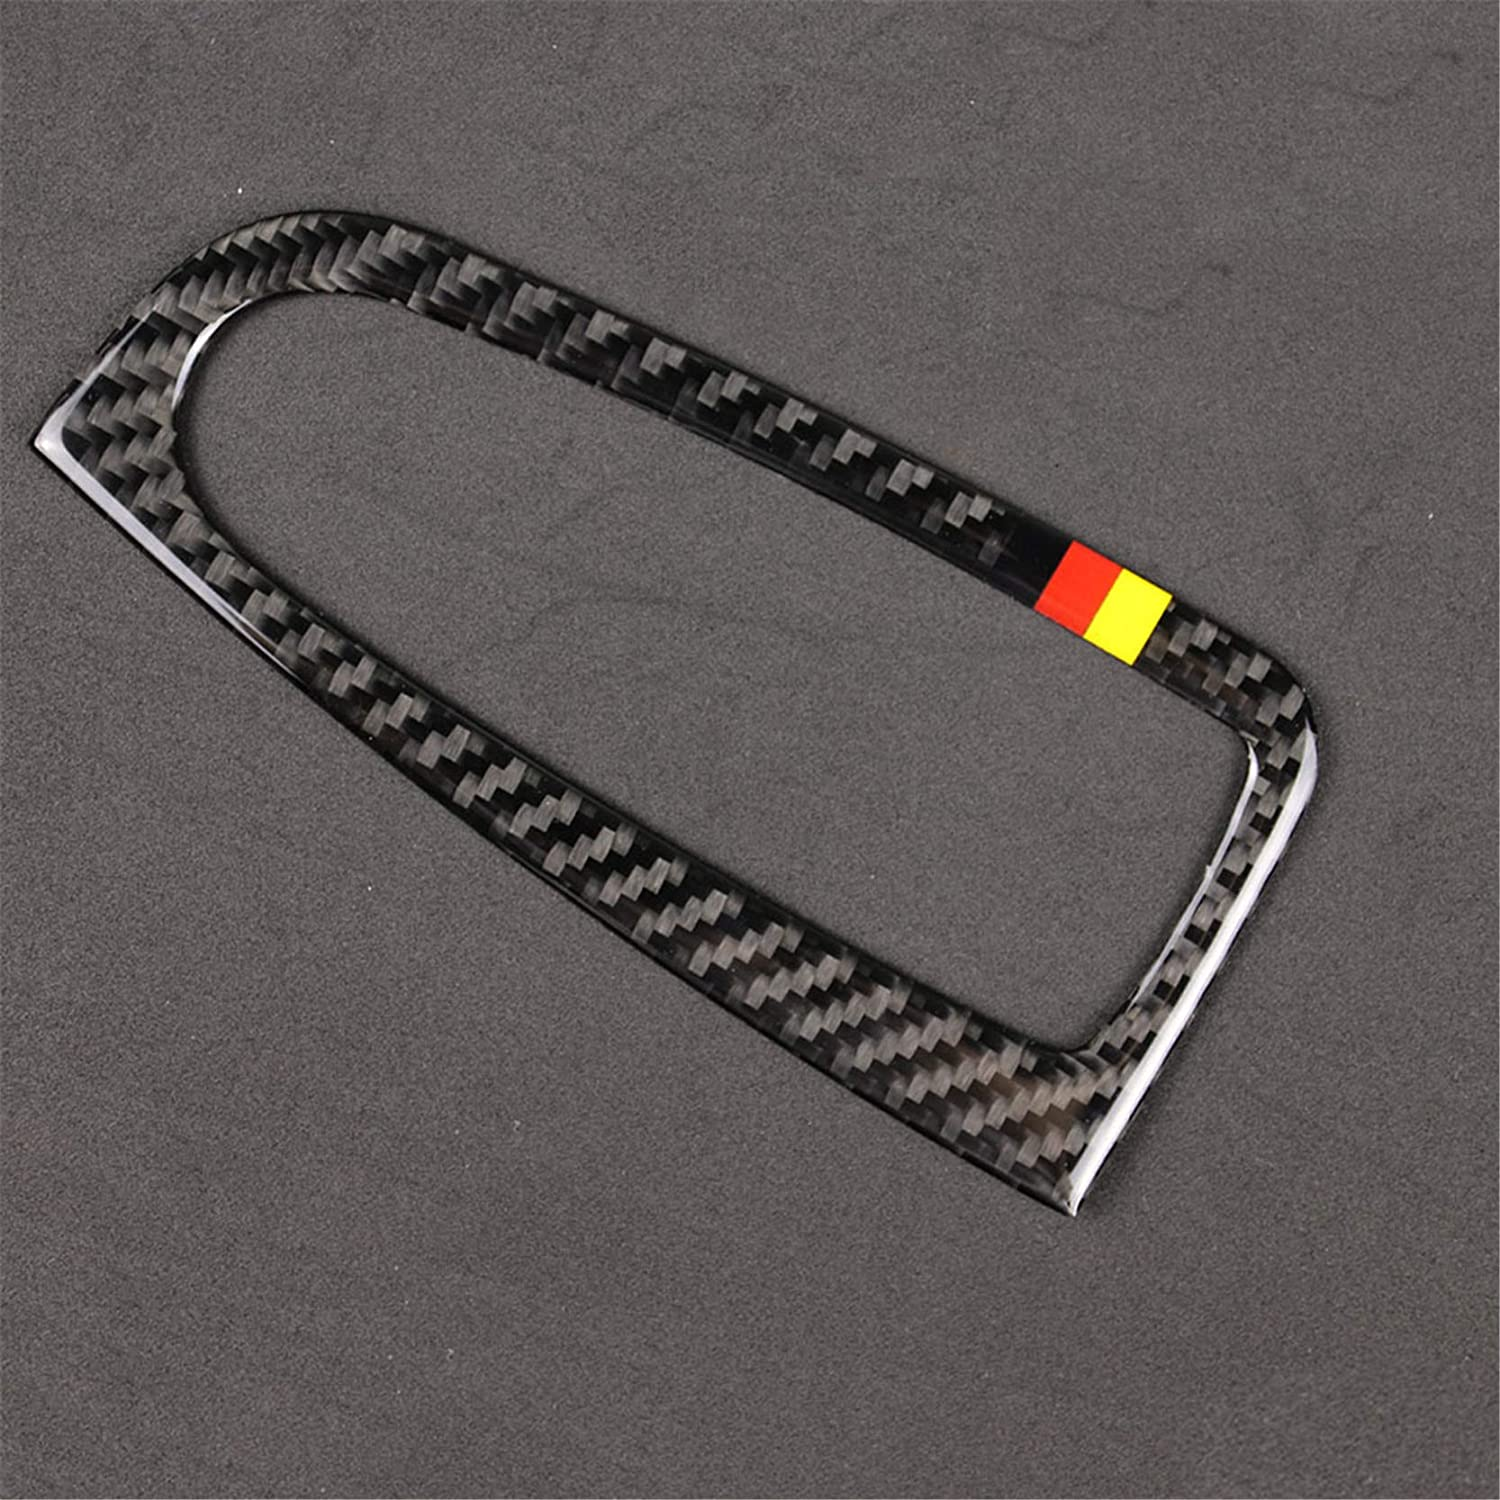 hors Carbon Fiber Armrest Door Handle Window Lift Switch Button Frame Decal Cover Trim for Mercedes Benz C Class C180 C200 C220 C250 W205 GLC-Class X253//C253 2014-present BZ03 German Flag